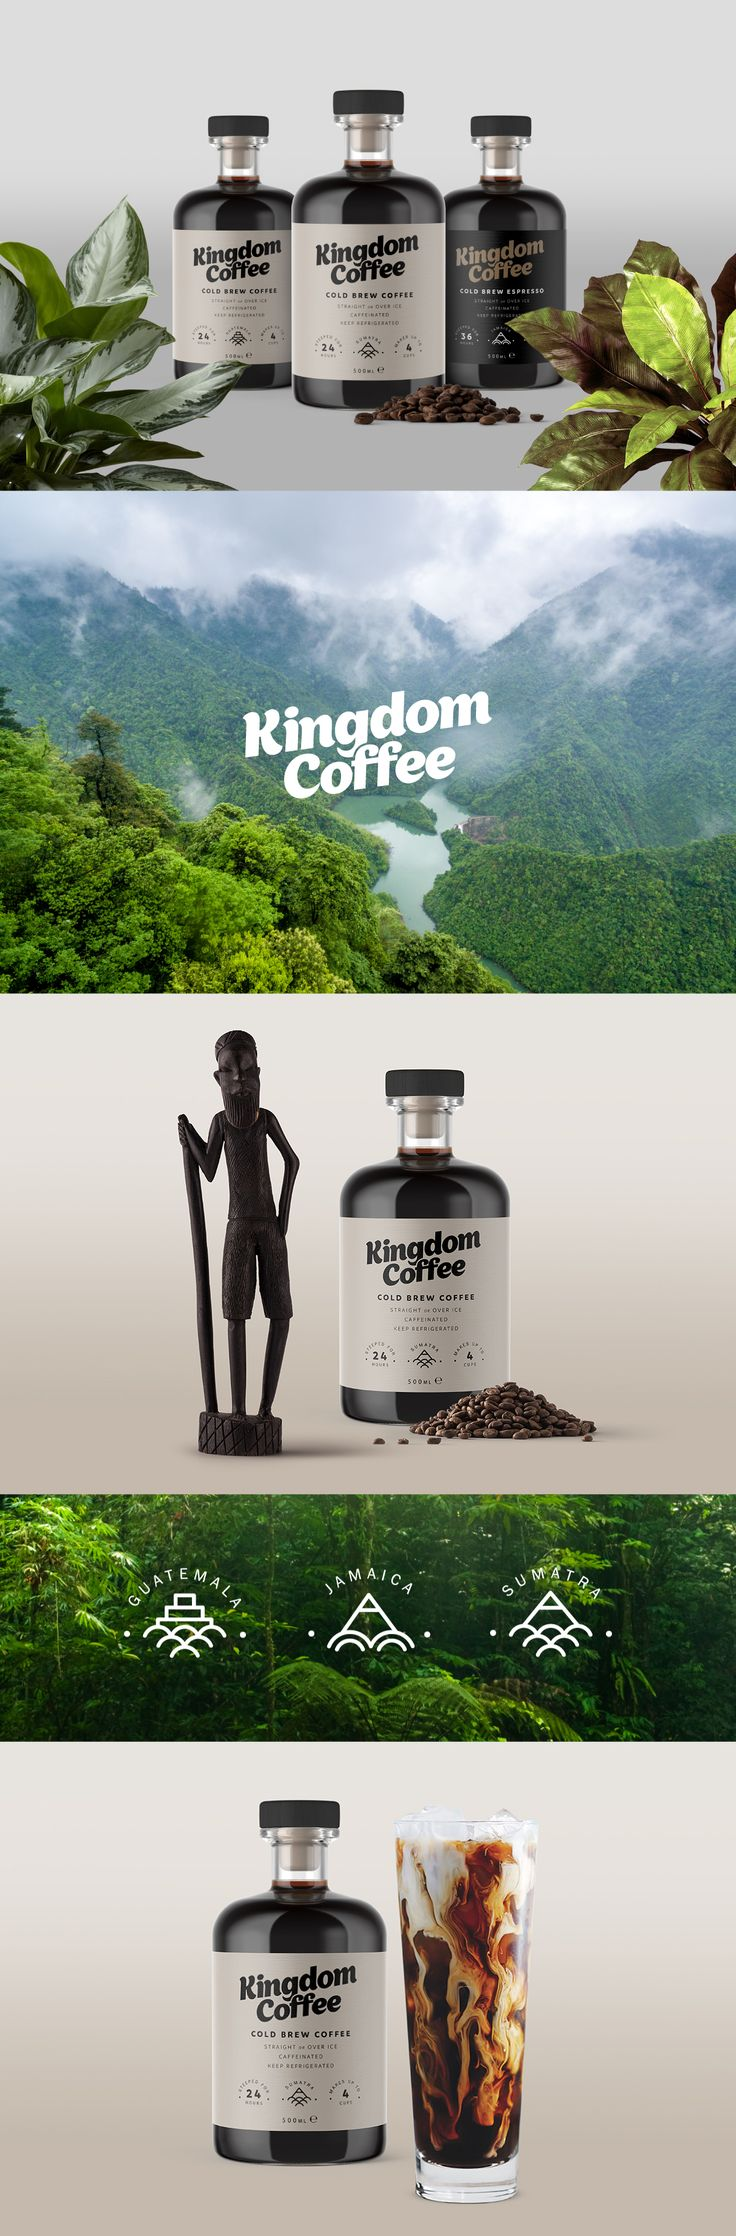 Kingdom Coffee imports organic, fairtrade coffee into the Republic of Ireland, and now we have an opportunity to create our first consumer facing product, cold brew coffee. #packaging #coffee #design